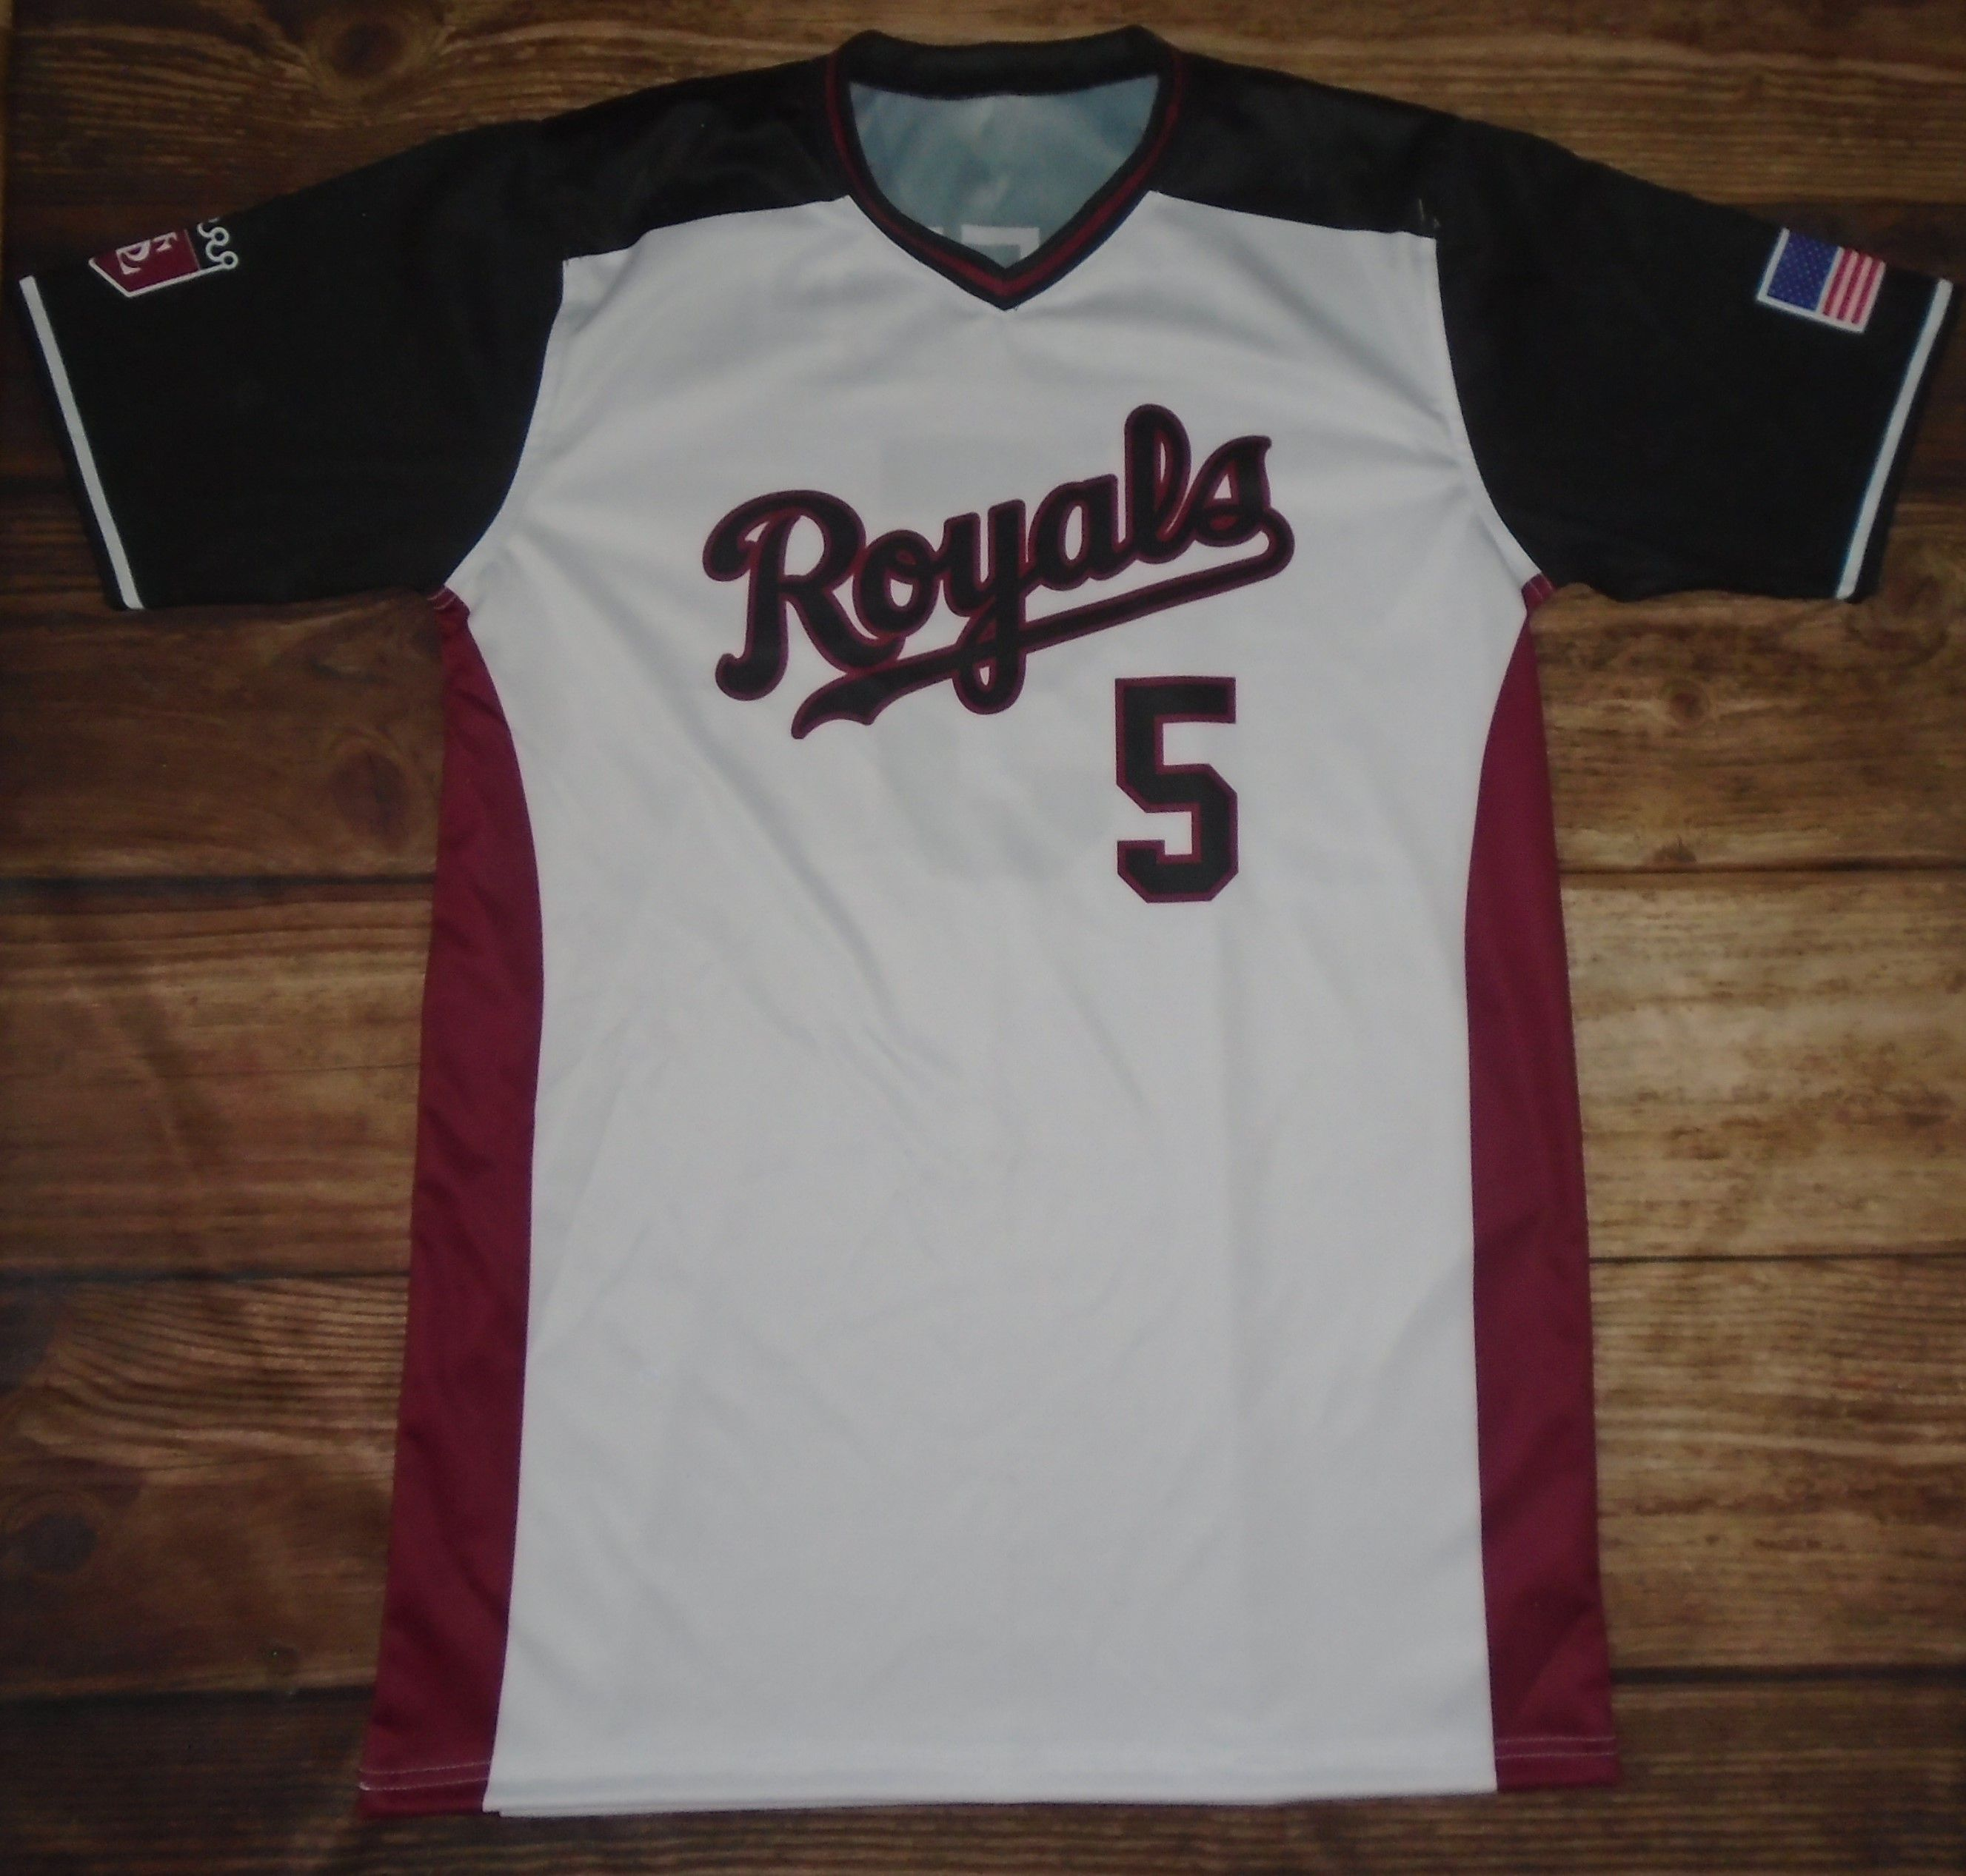 Check Out These Custom Jerseys Designed By Royals Baseball And